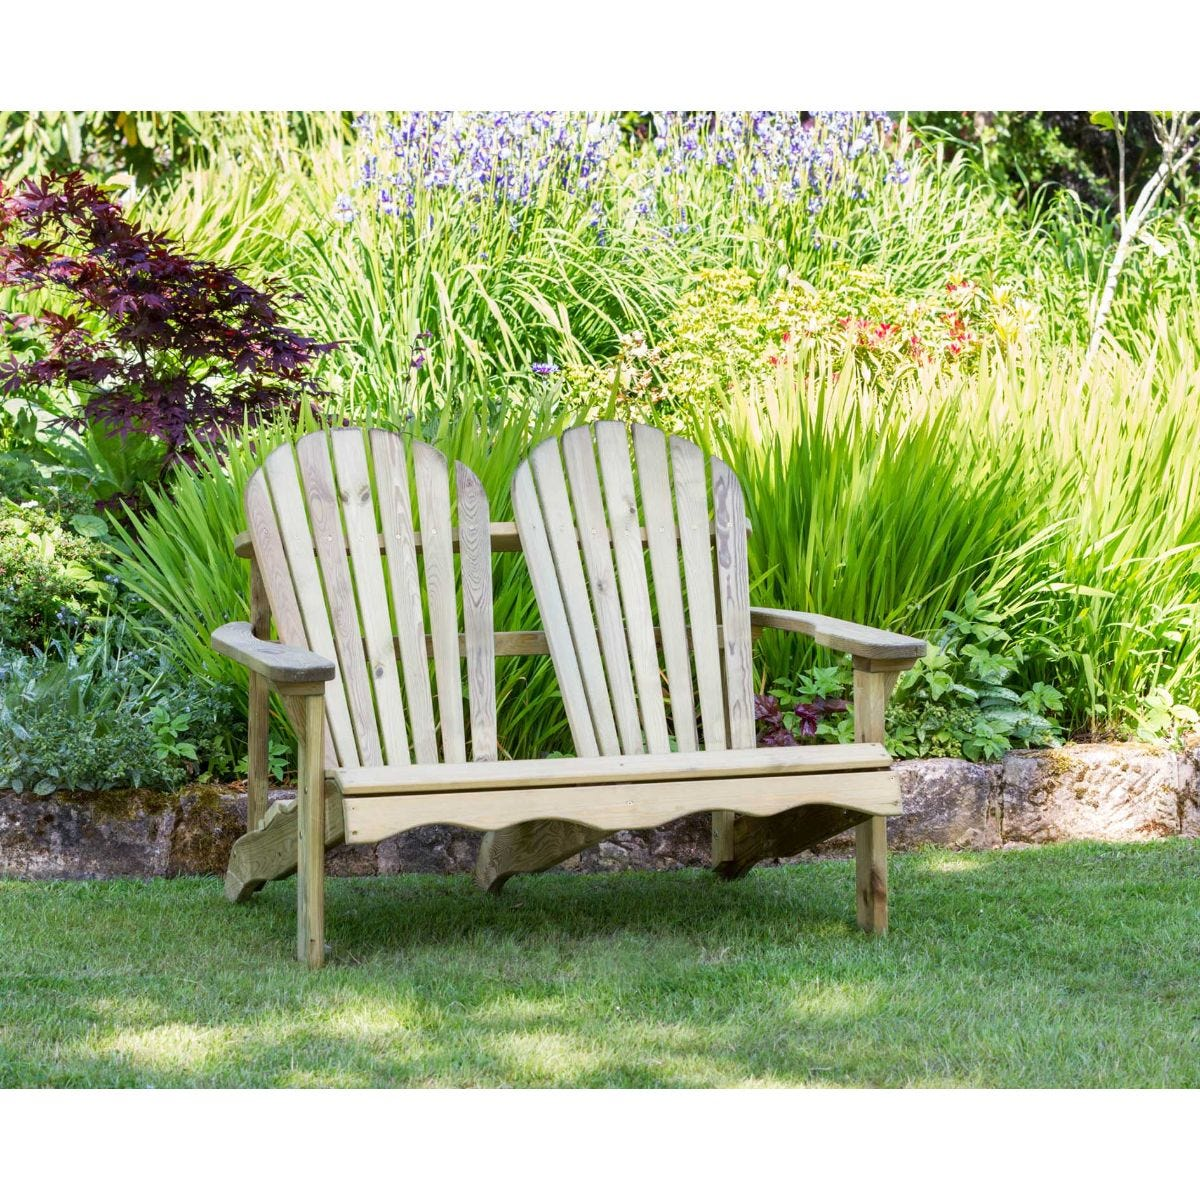 Zest4Leisure Lily Relax 2 Seater Garden Bench